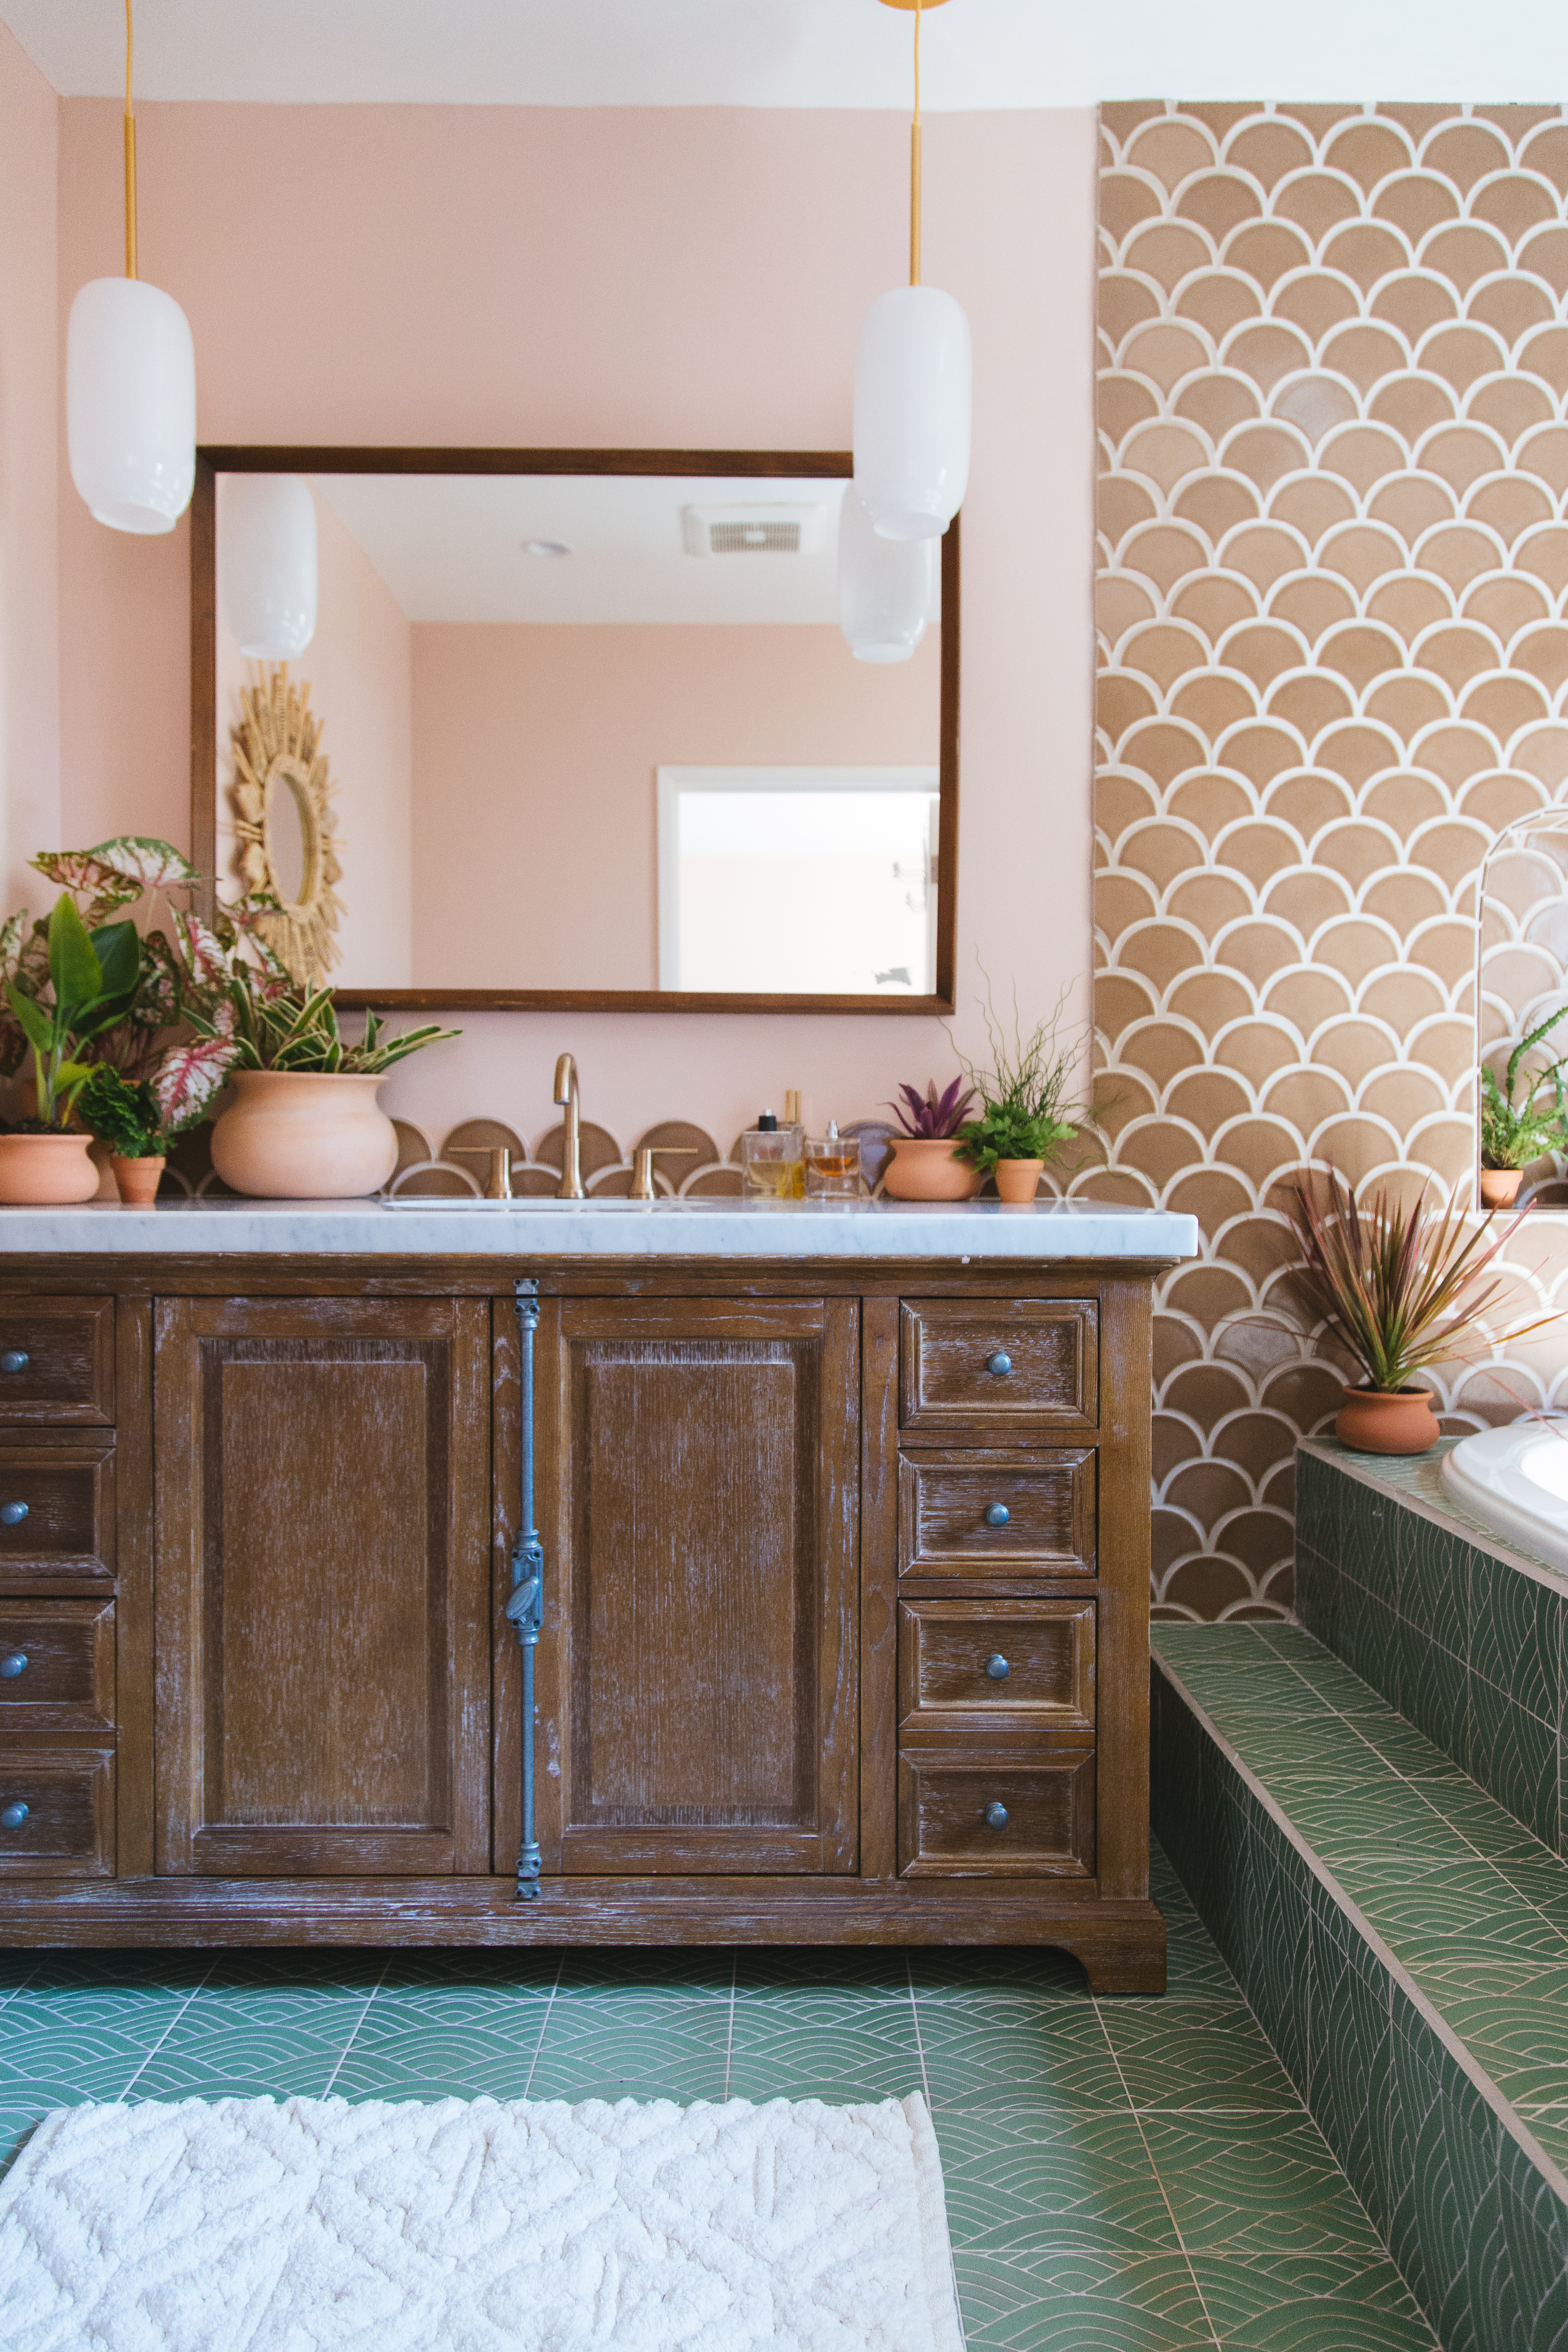 Q3_2018_image_residential_influencer_full-rights_Justina_Faith_Blakeney_parents_condo_masterbath_wall_tile_nutmeg_ogee_drop_floor_handpainted_summit_green_motif_vanity_with_tub-surround.jpg?mtime=20181008162539#asset:420263